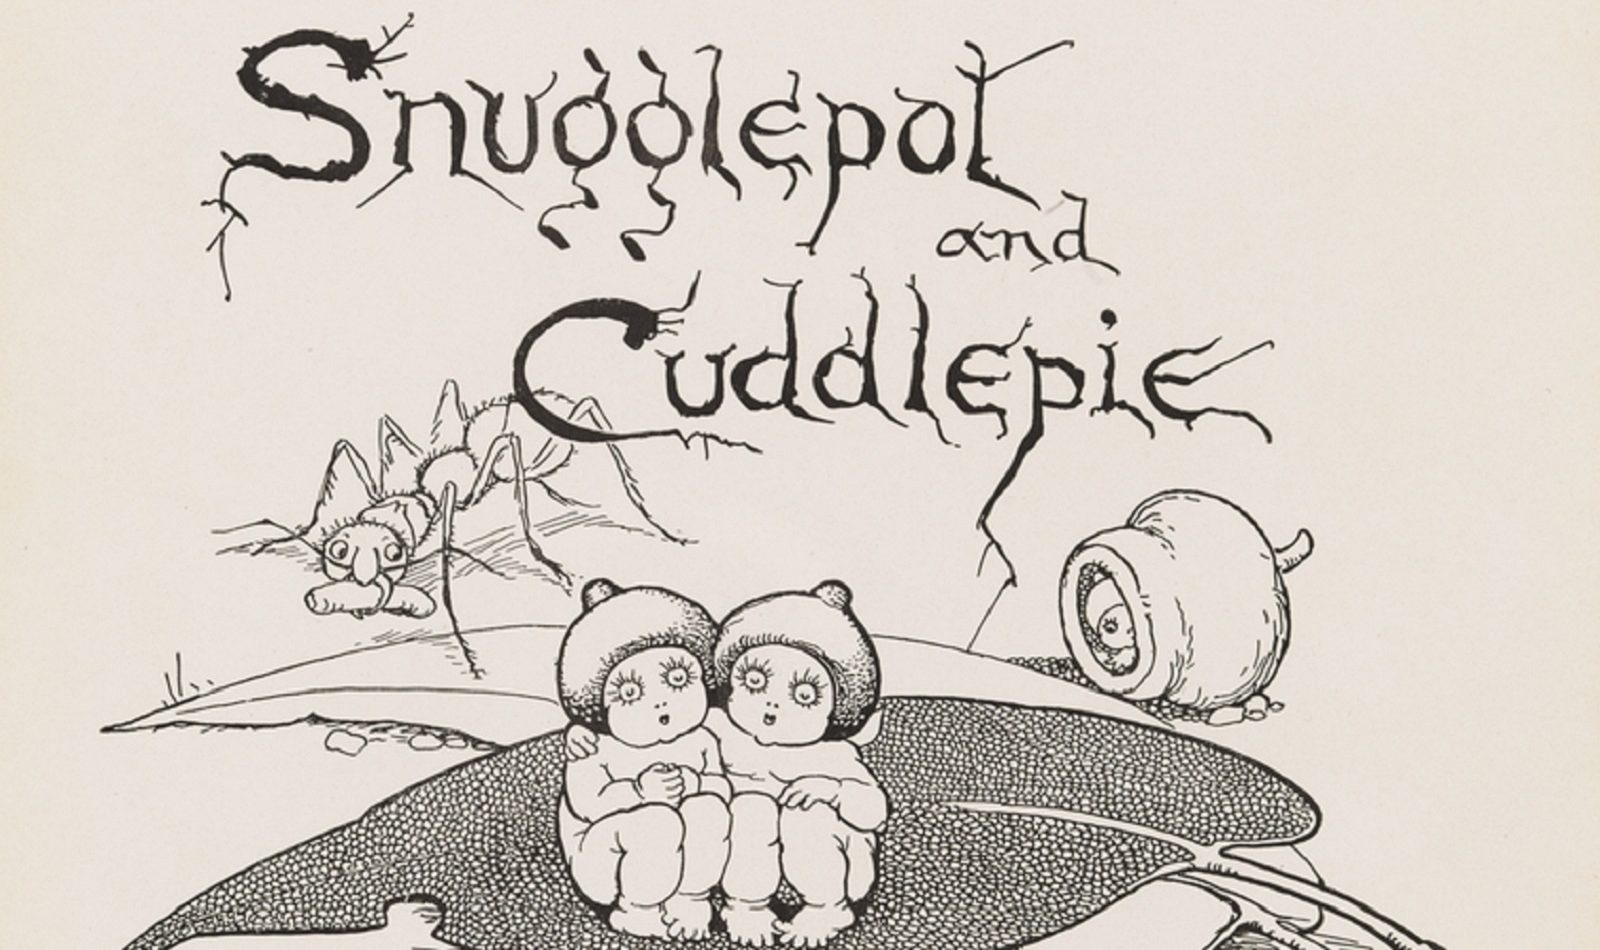 The frontispiece to May Gibbs' book, Snugglepot and Cuddlepie